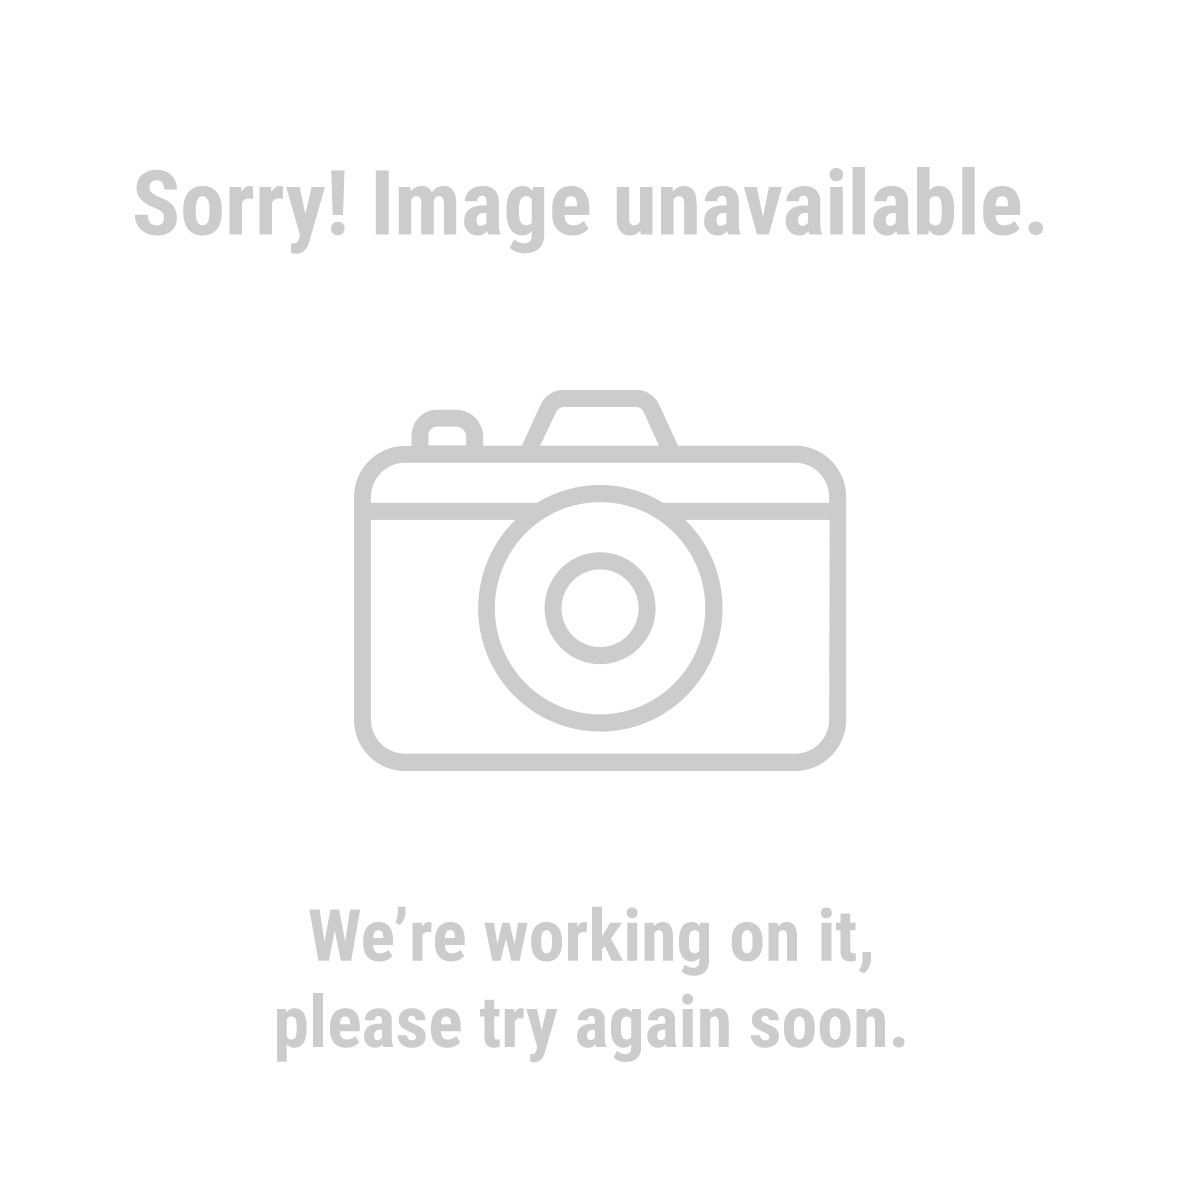 Western Safety 99580 Riding/Stable Work Gloves, Small